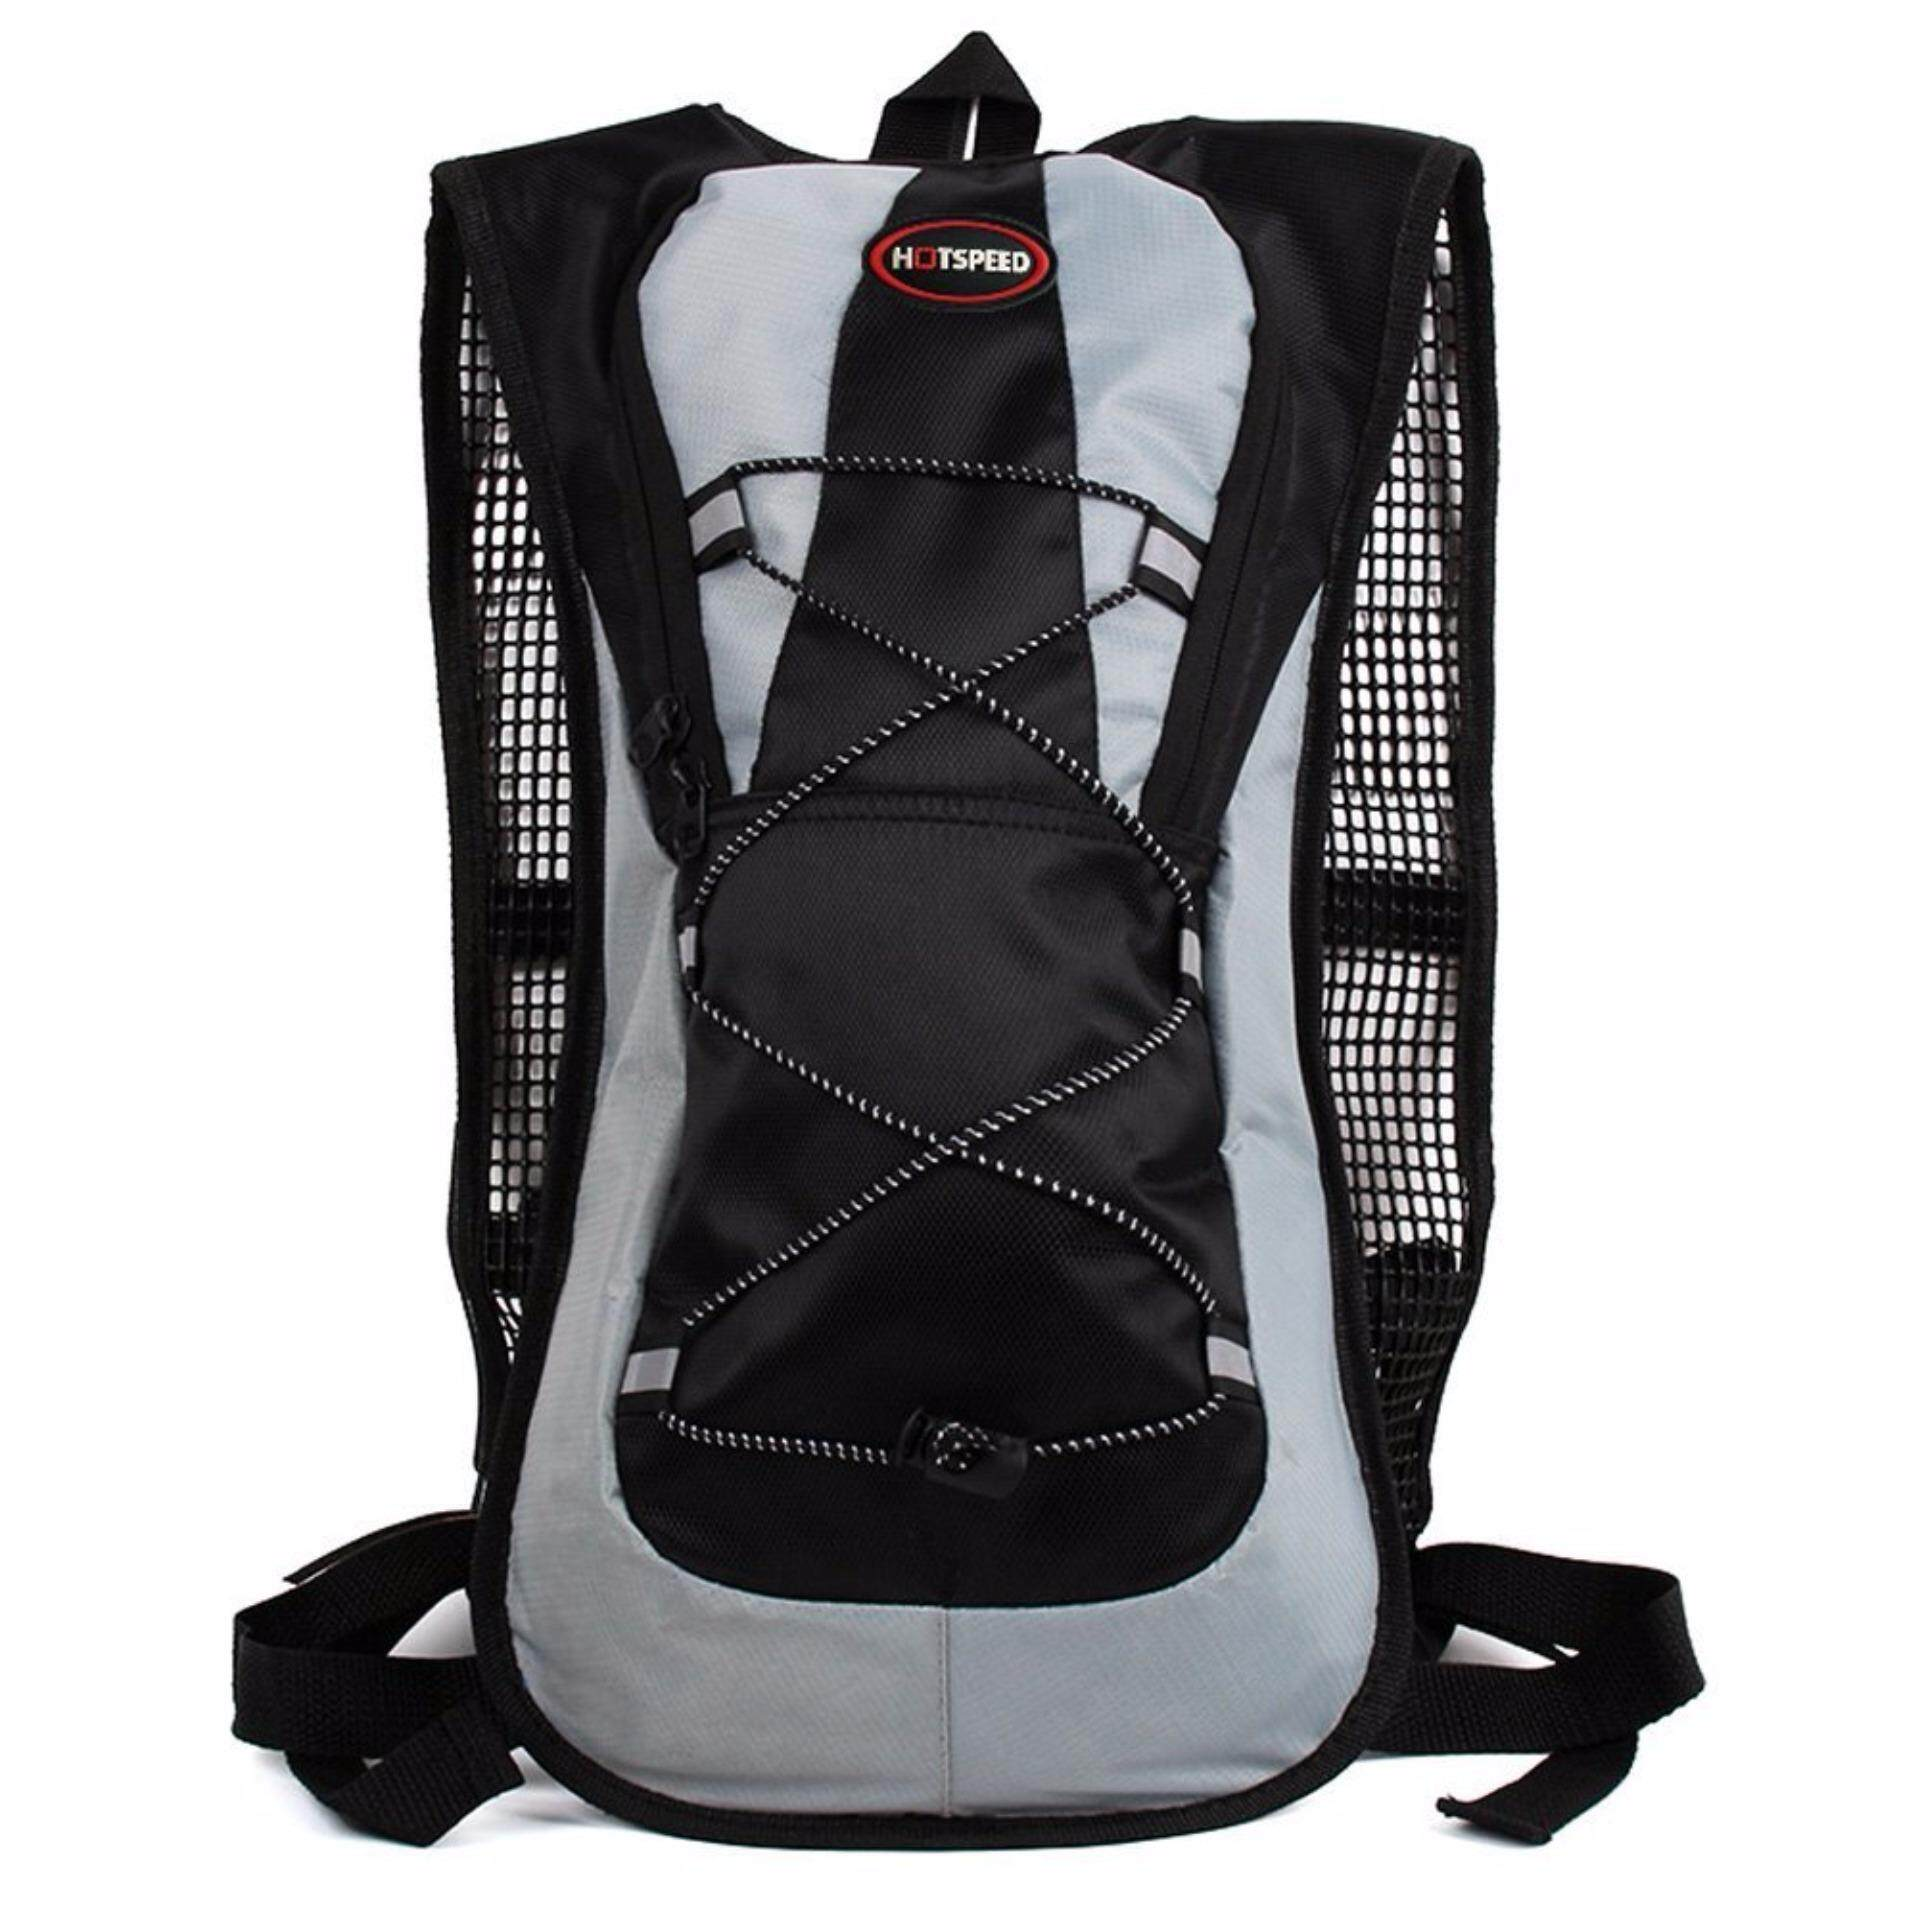 [FREE DELIVERY] Hotspeed 5L Hydration Backpack Hydration Bag Cycling Bag for Cycling Hiking - Black